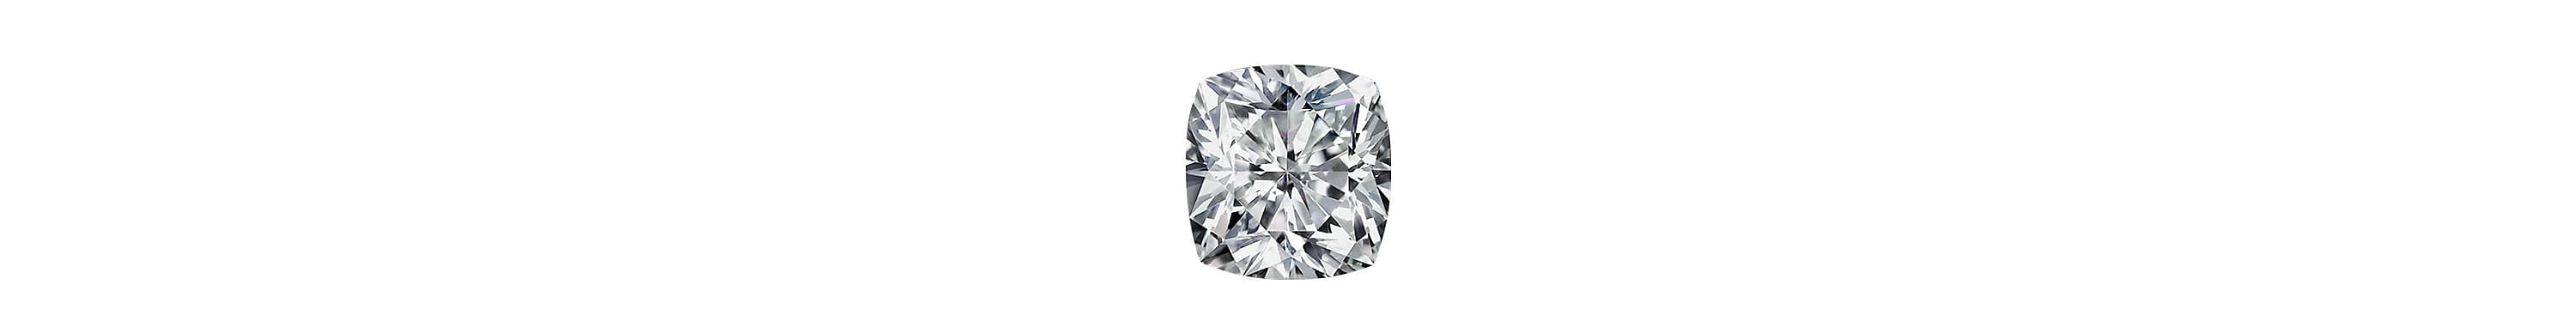 A color photograph shows a close-up shot of a large cushion-cut diamond on a white background.